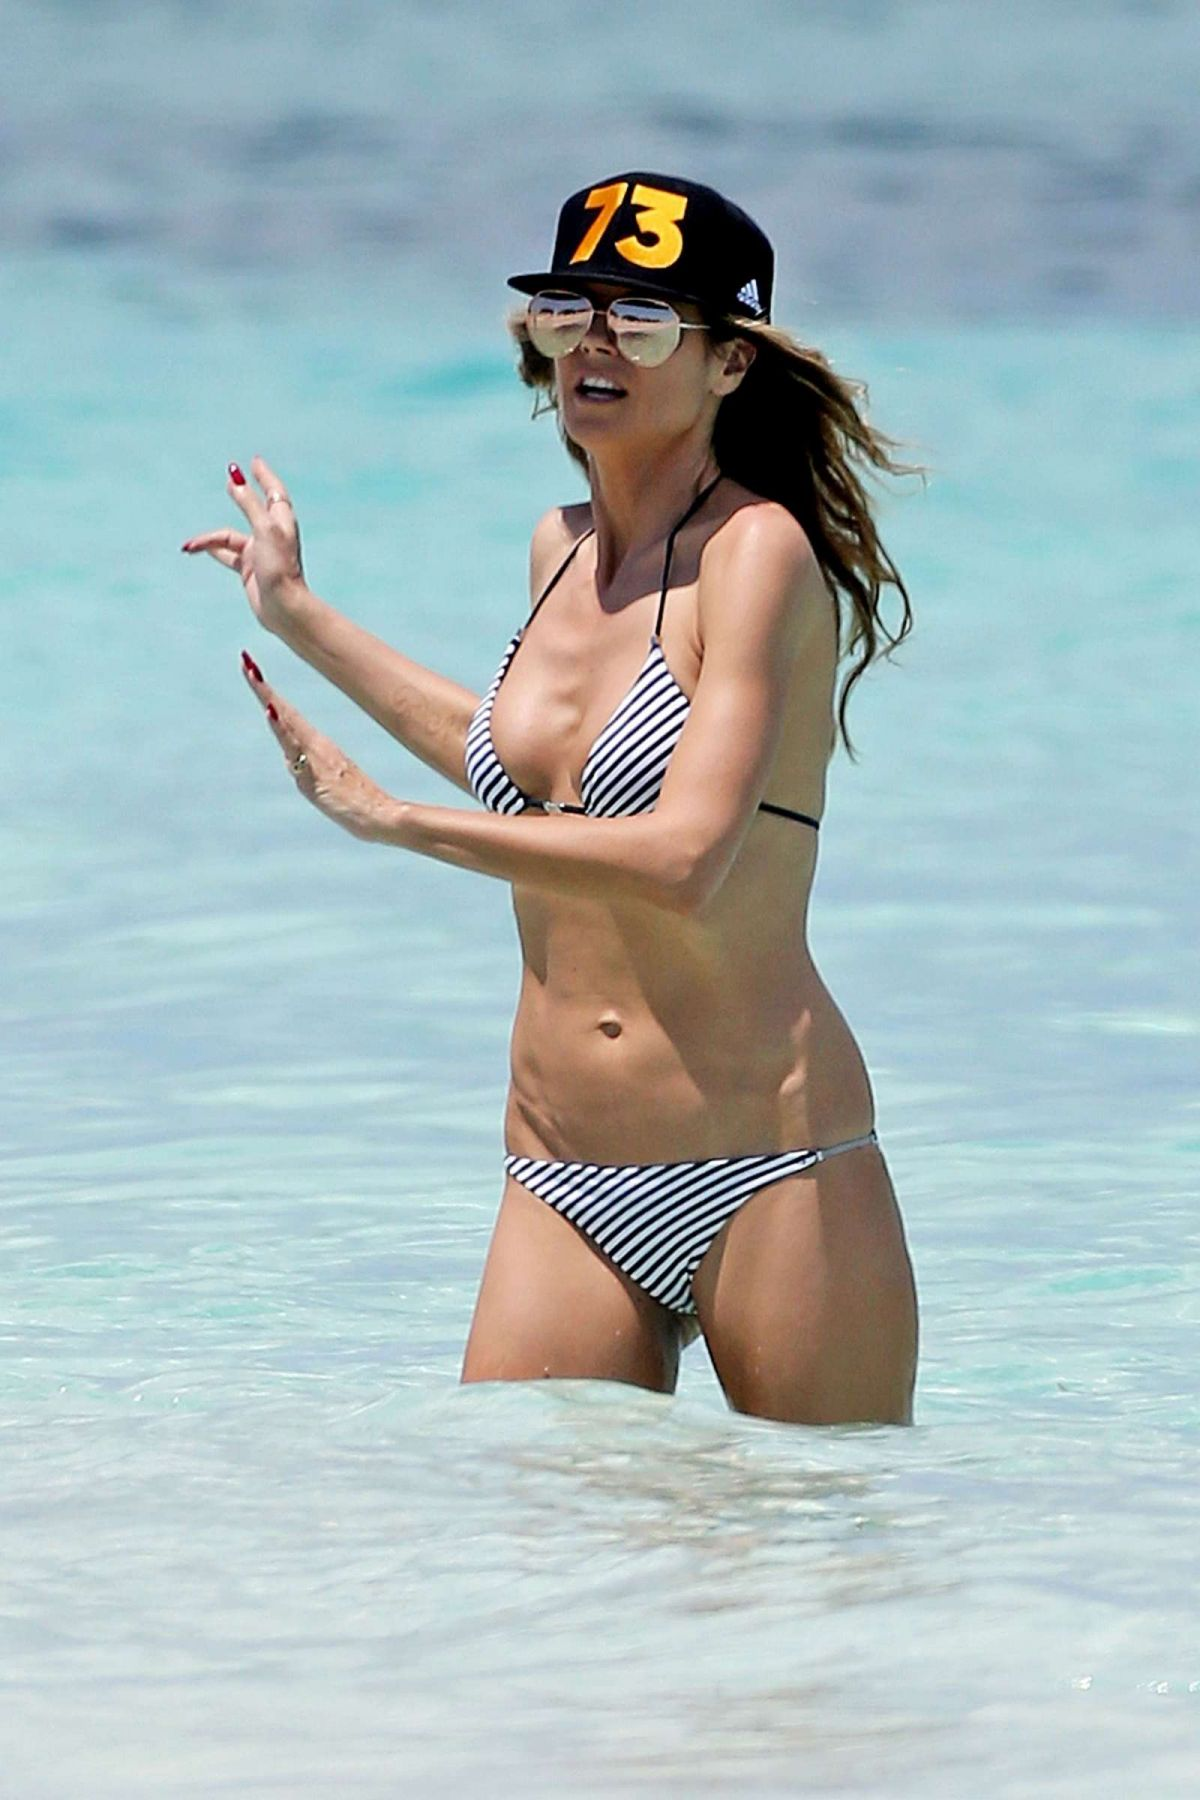 HEIDI KLUM in Bikini on the Beach in Turks & Caicos 04/02/2017